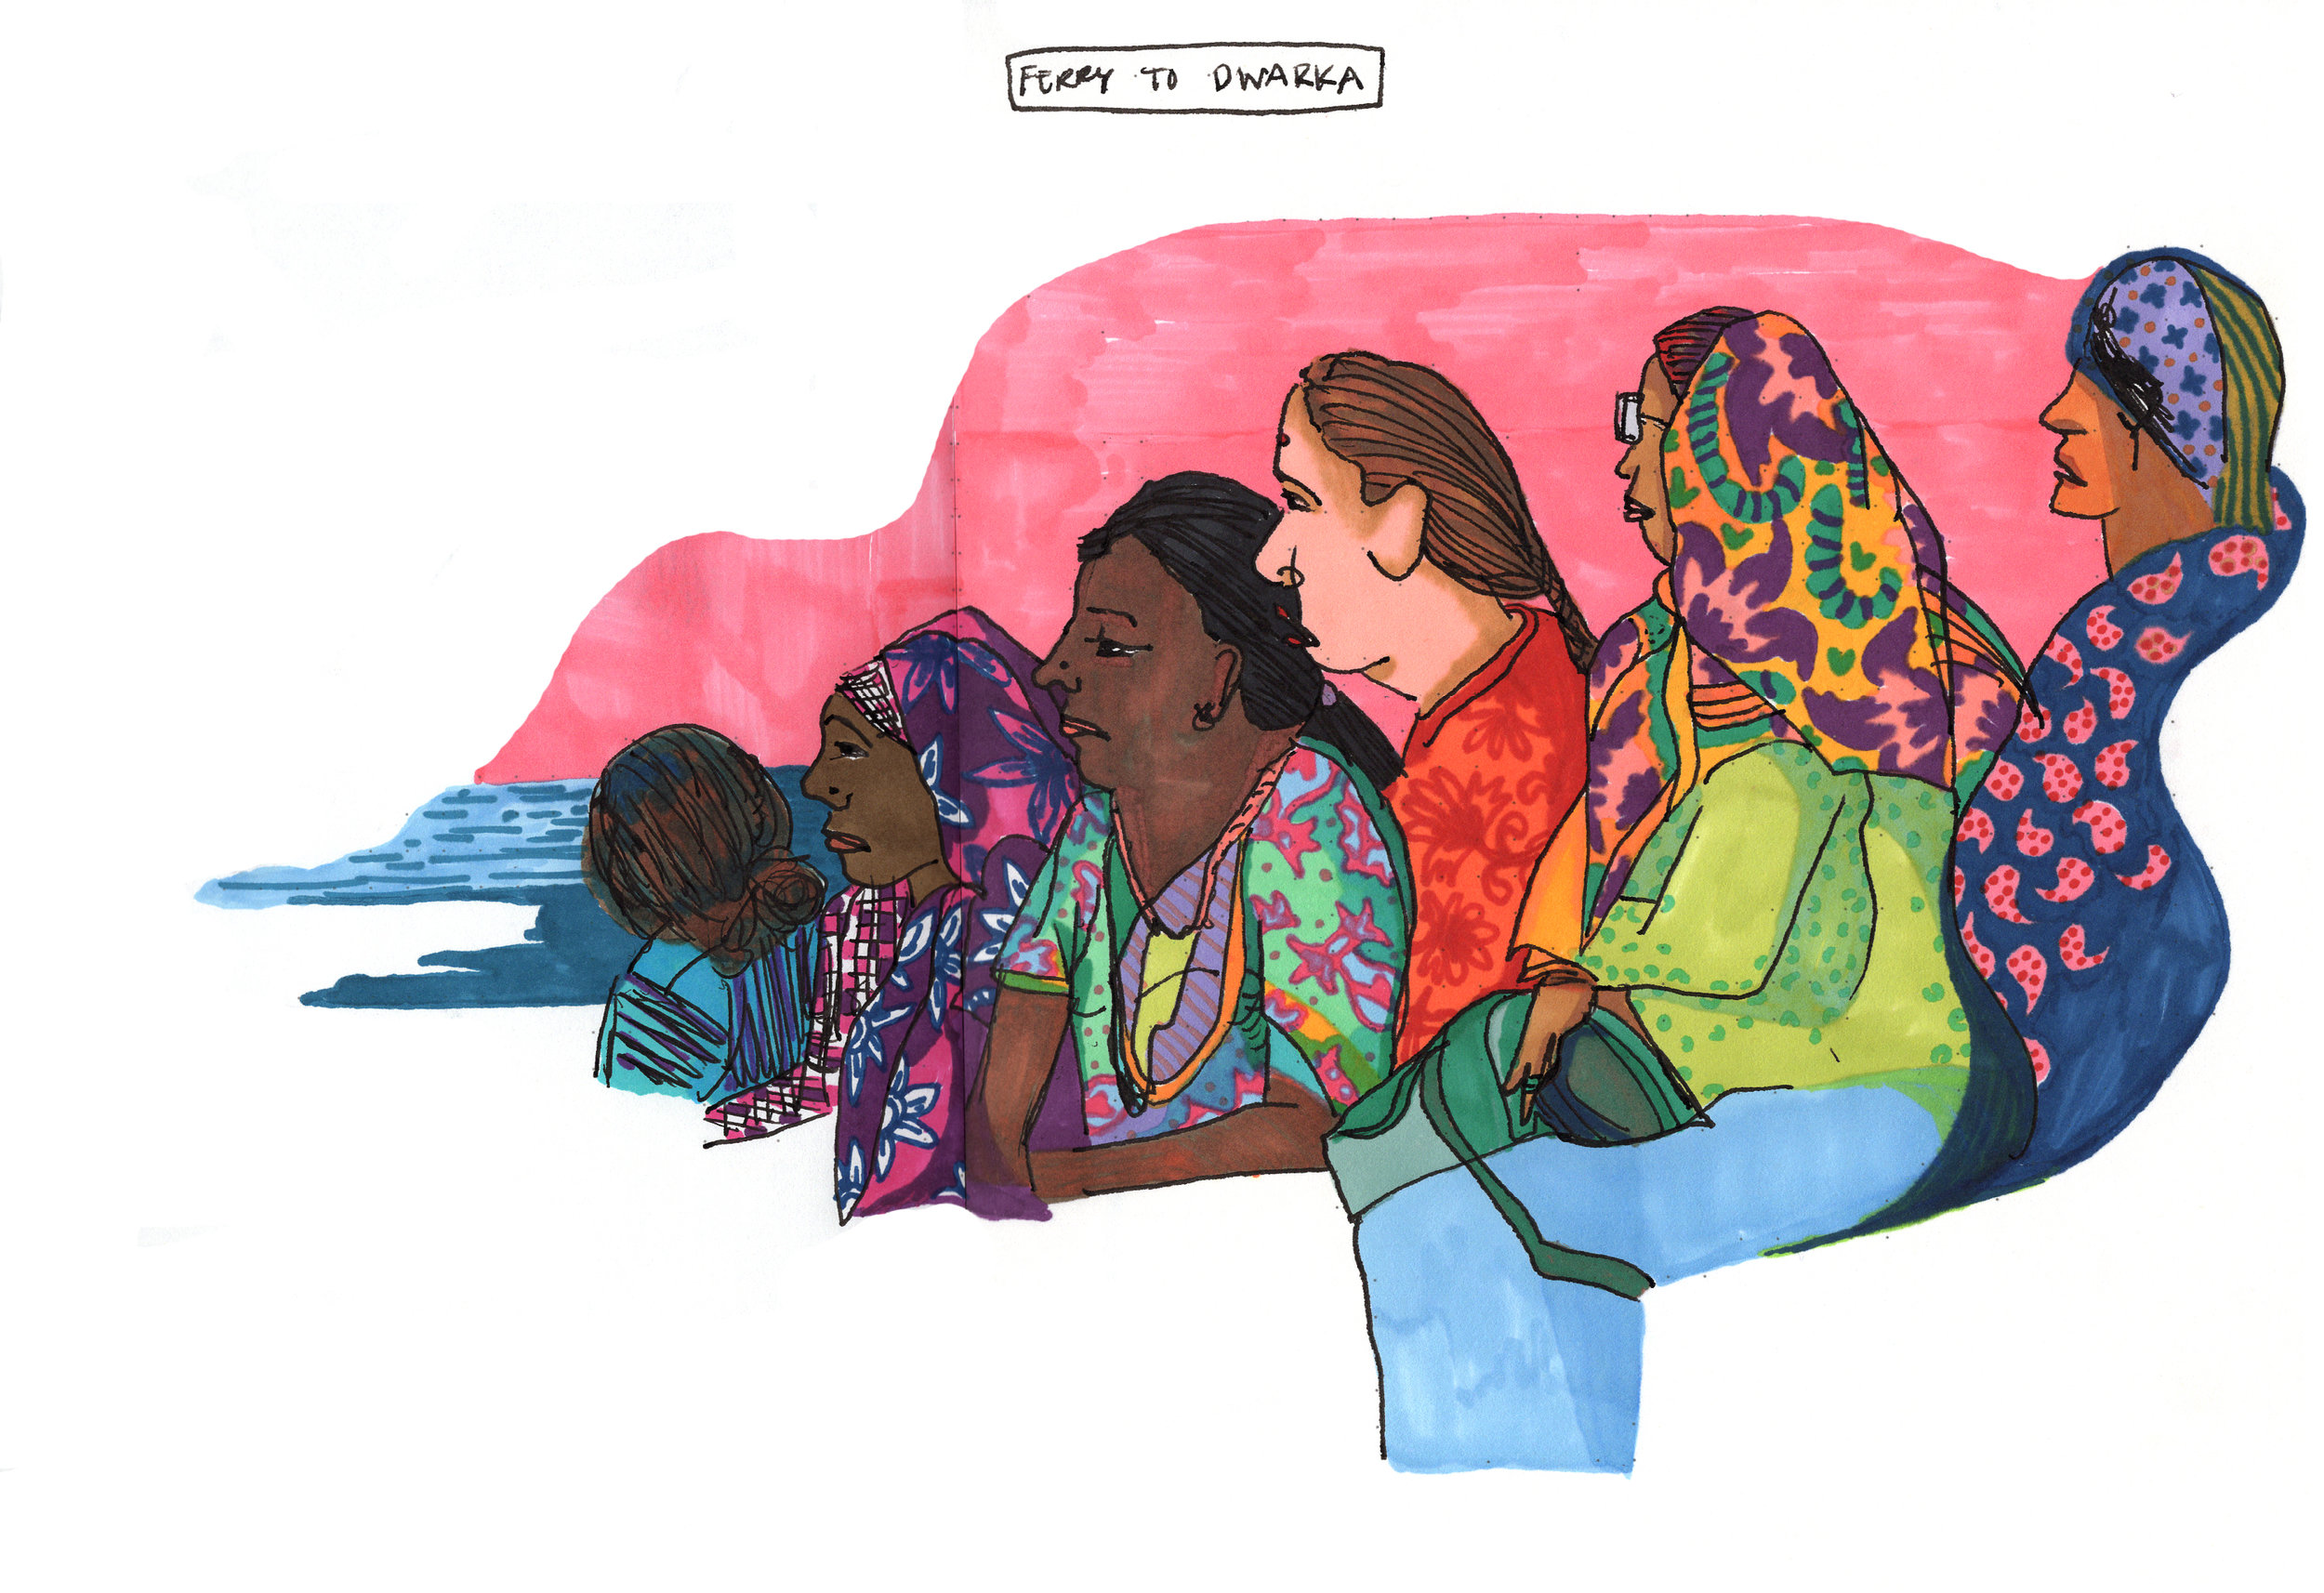 Sketchbook from a motherland trip to India: Ferry to Dwarka, Gujurat, 2018-19.